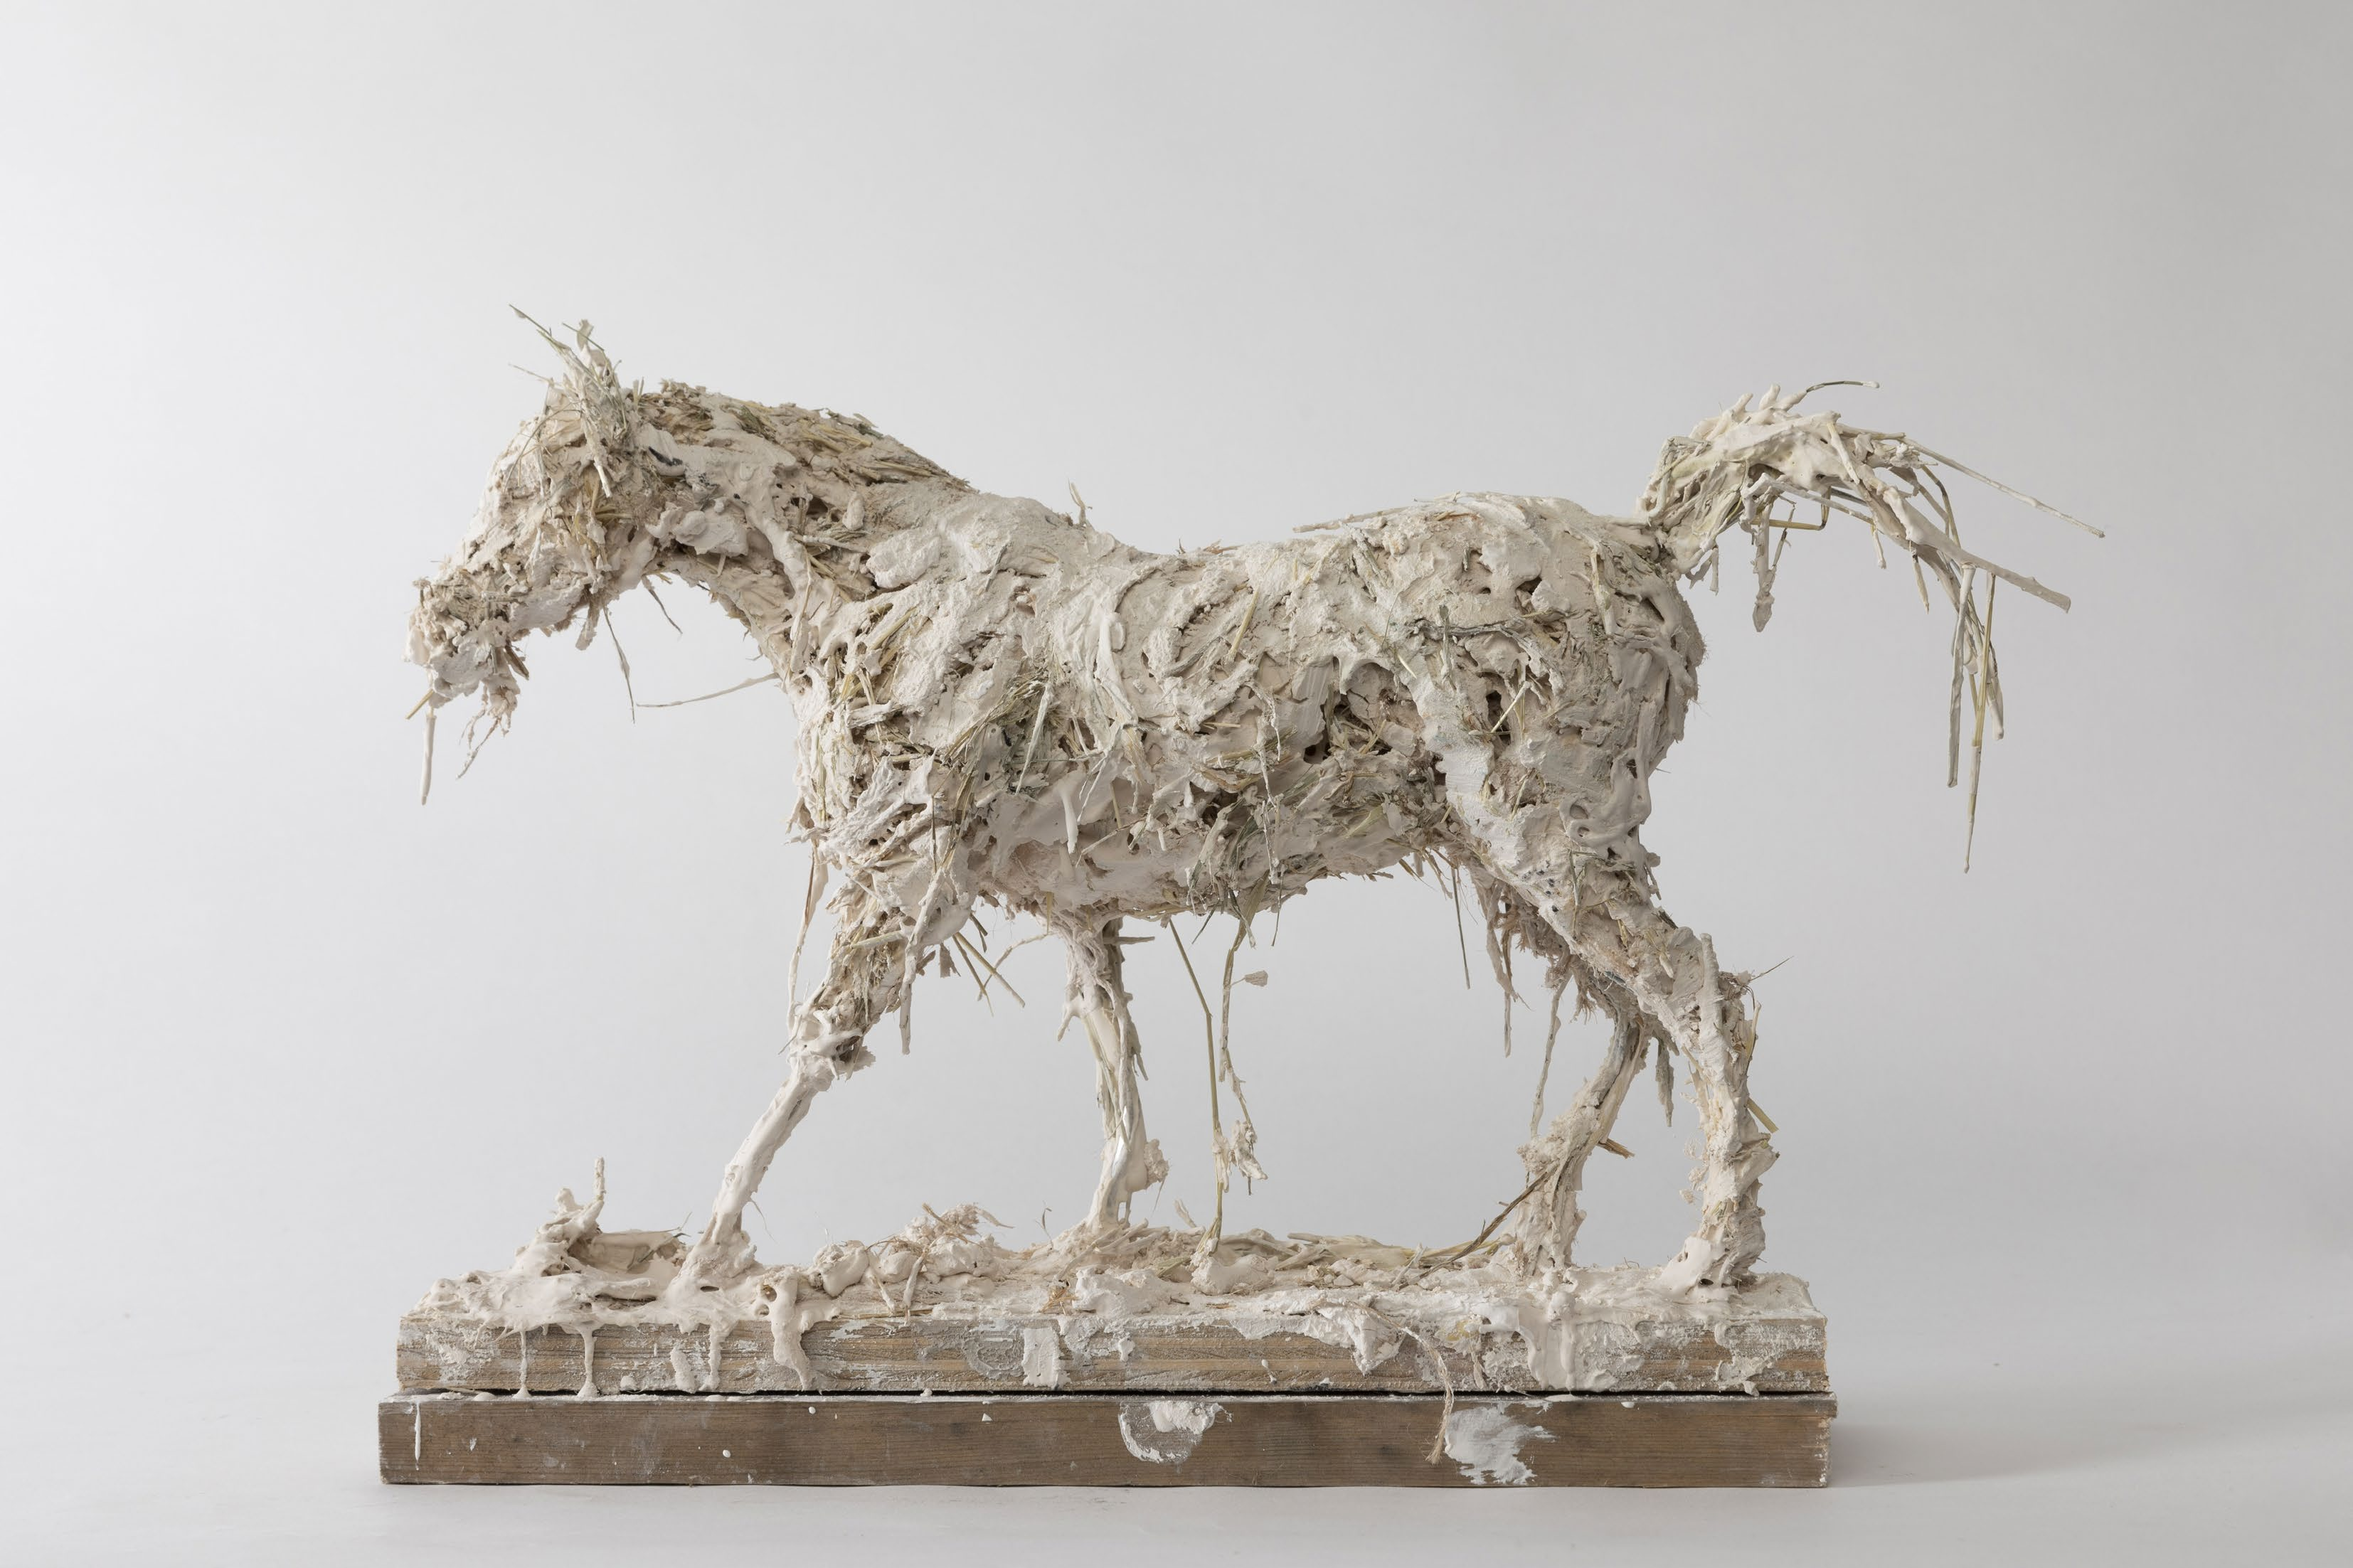 Lot 2.7 - 'Pretty Horse' by Nicola Hicks MBE